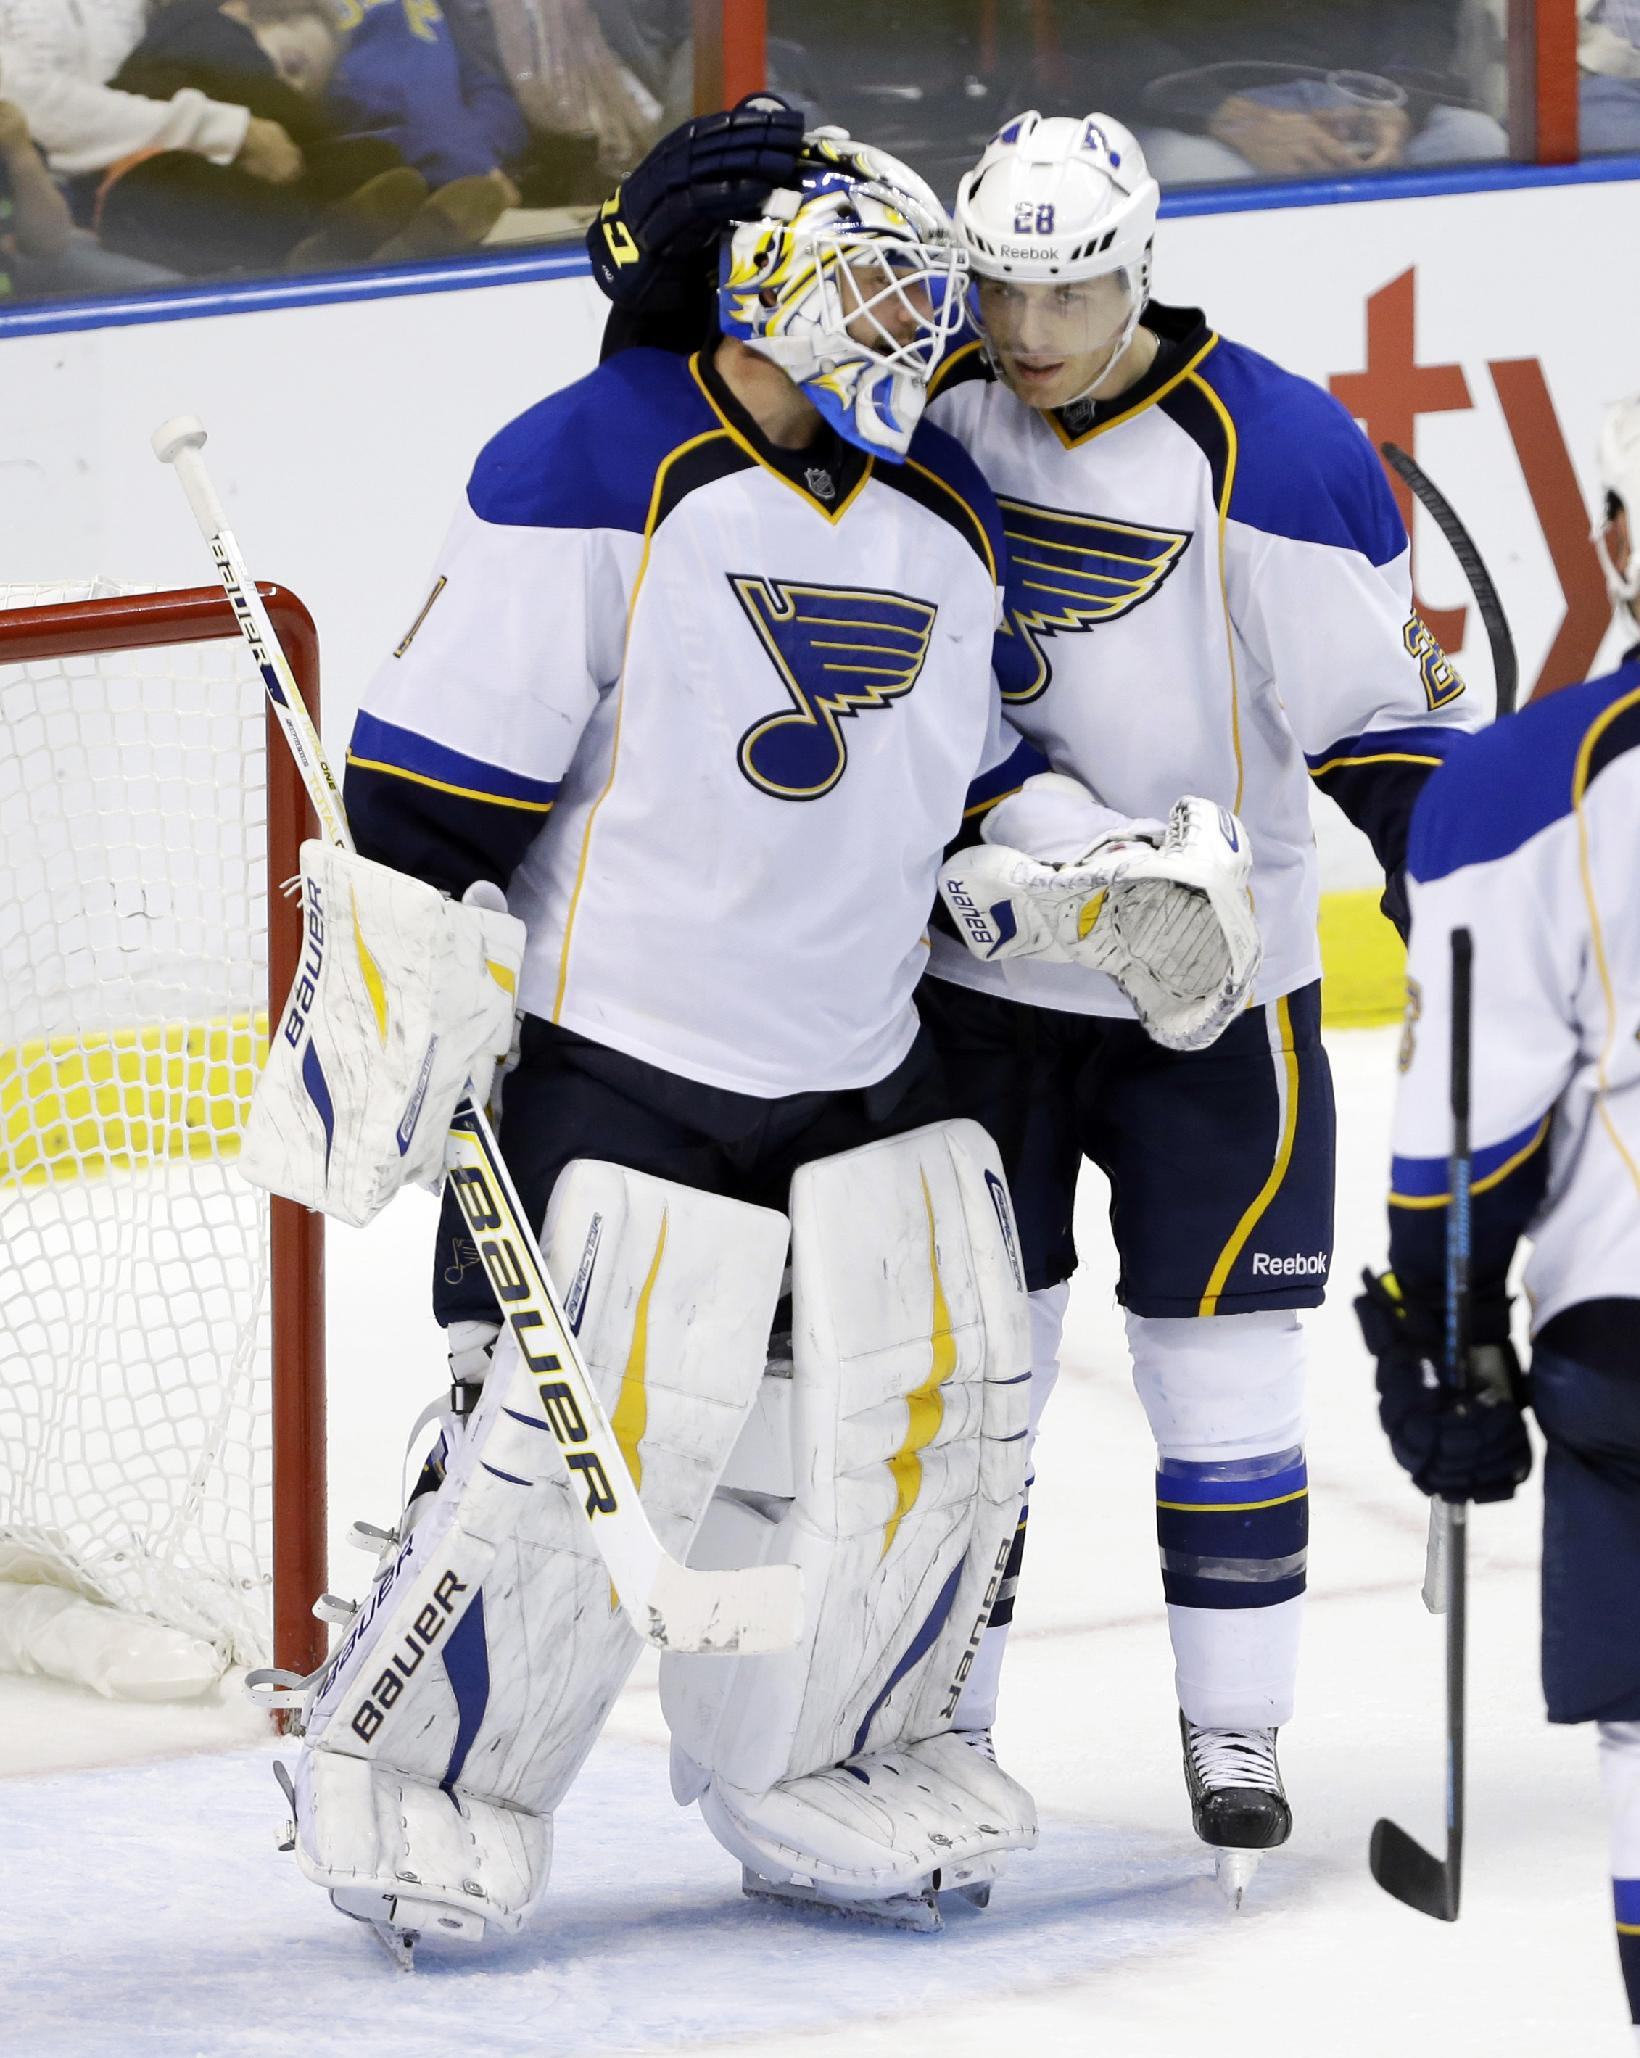 St. Louis Blues goalie Brian Elliott, left, is congratulated by Ian Cole after the Blues defeated the Florida Panthers 4-0 during the third period of an NHL hockey game Friday, Nov. 1, 2013, in Sunrise, Fla